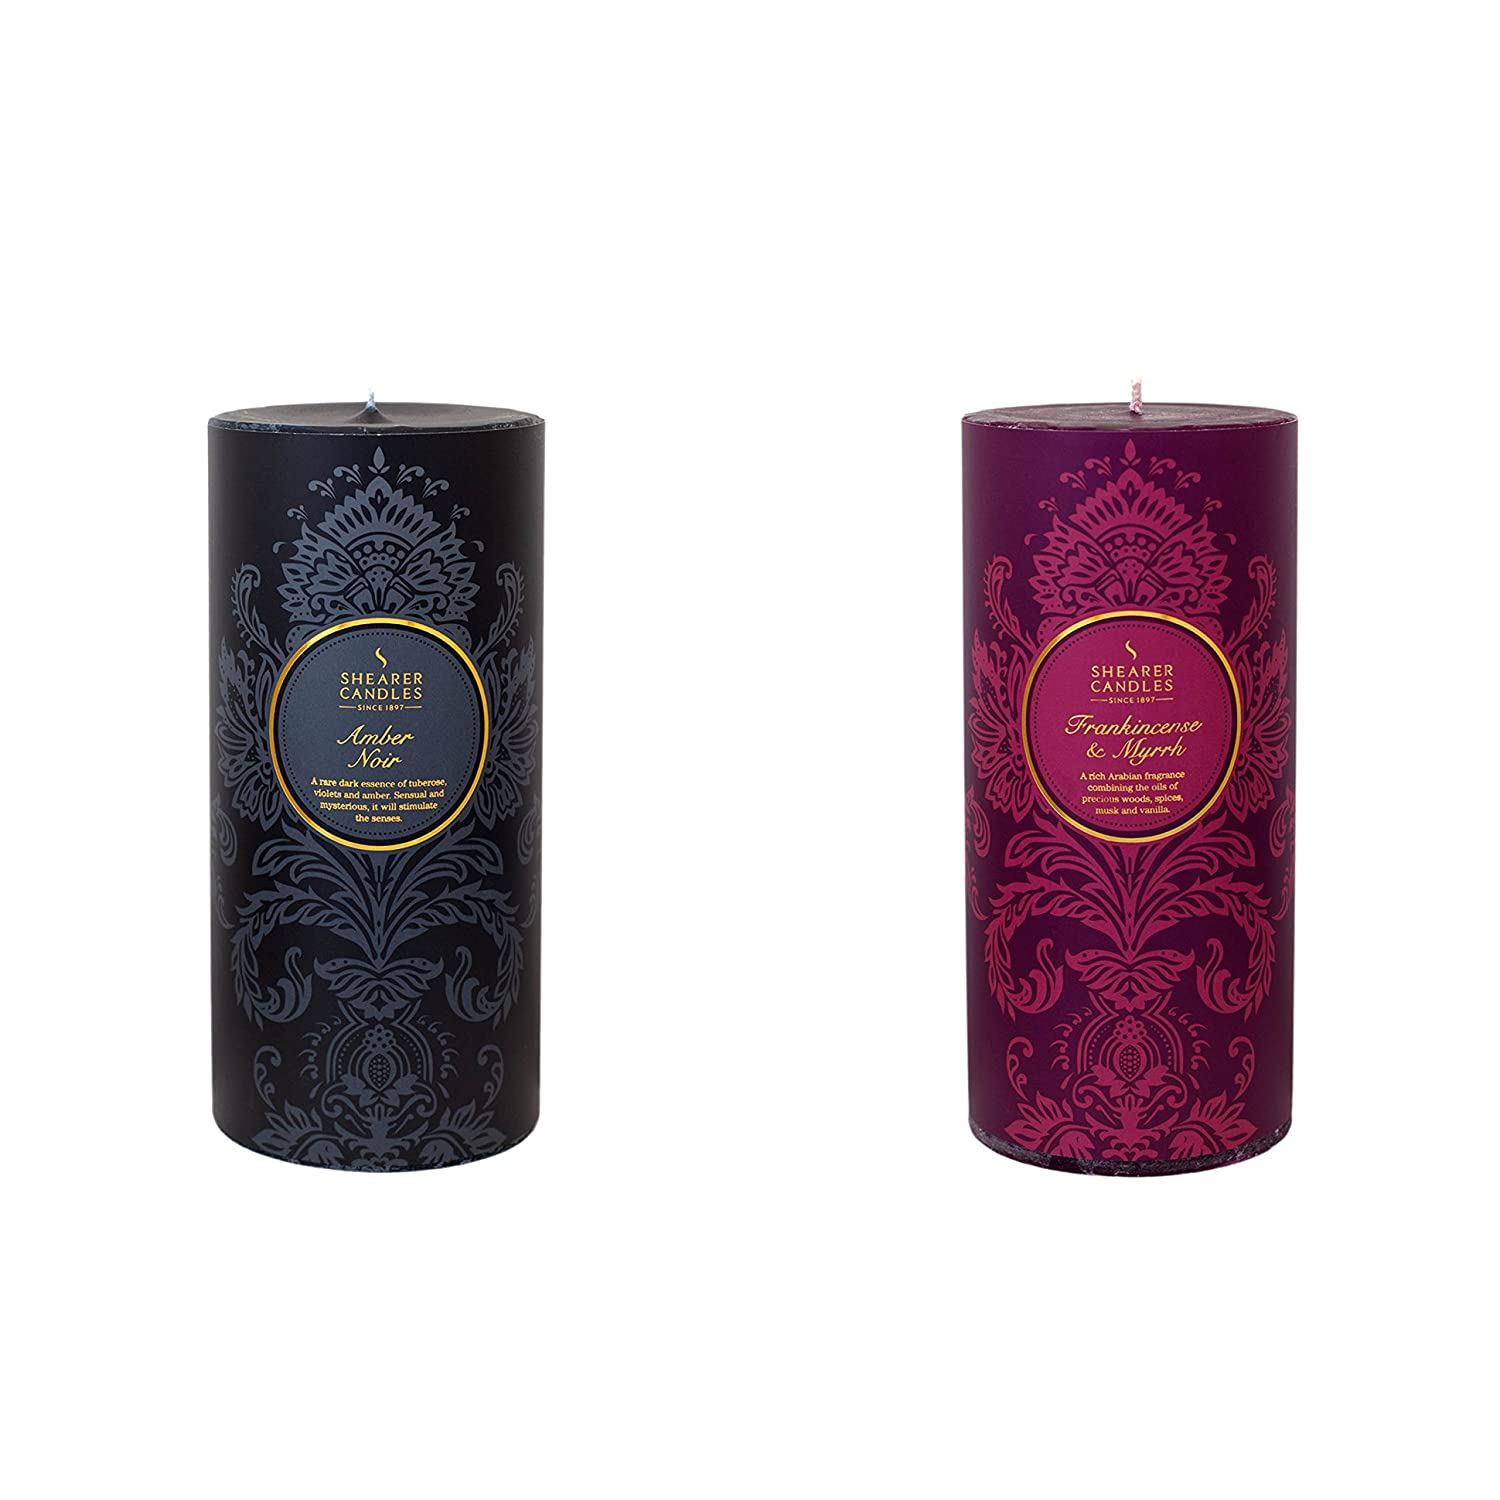 Shearer Candles Scented Pillar Twin Pack-Amber Noir, Frankincense & Myrrh, Wax, Assorted, 26 x 19 x 10 cm ZZ0055